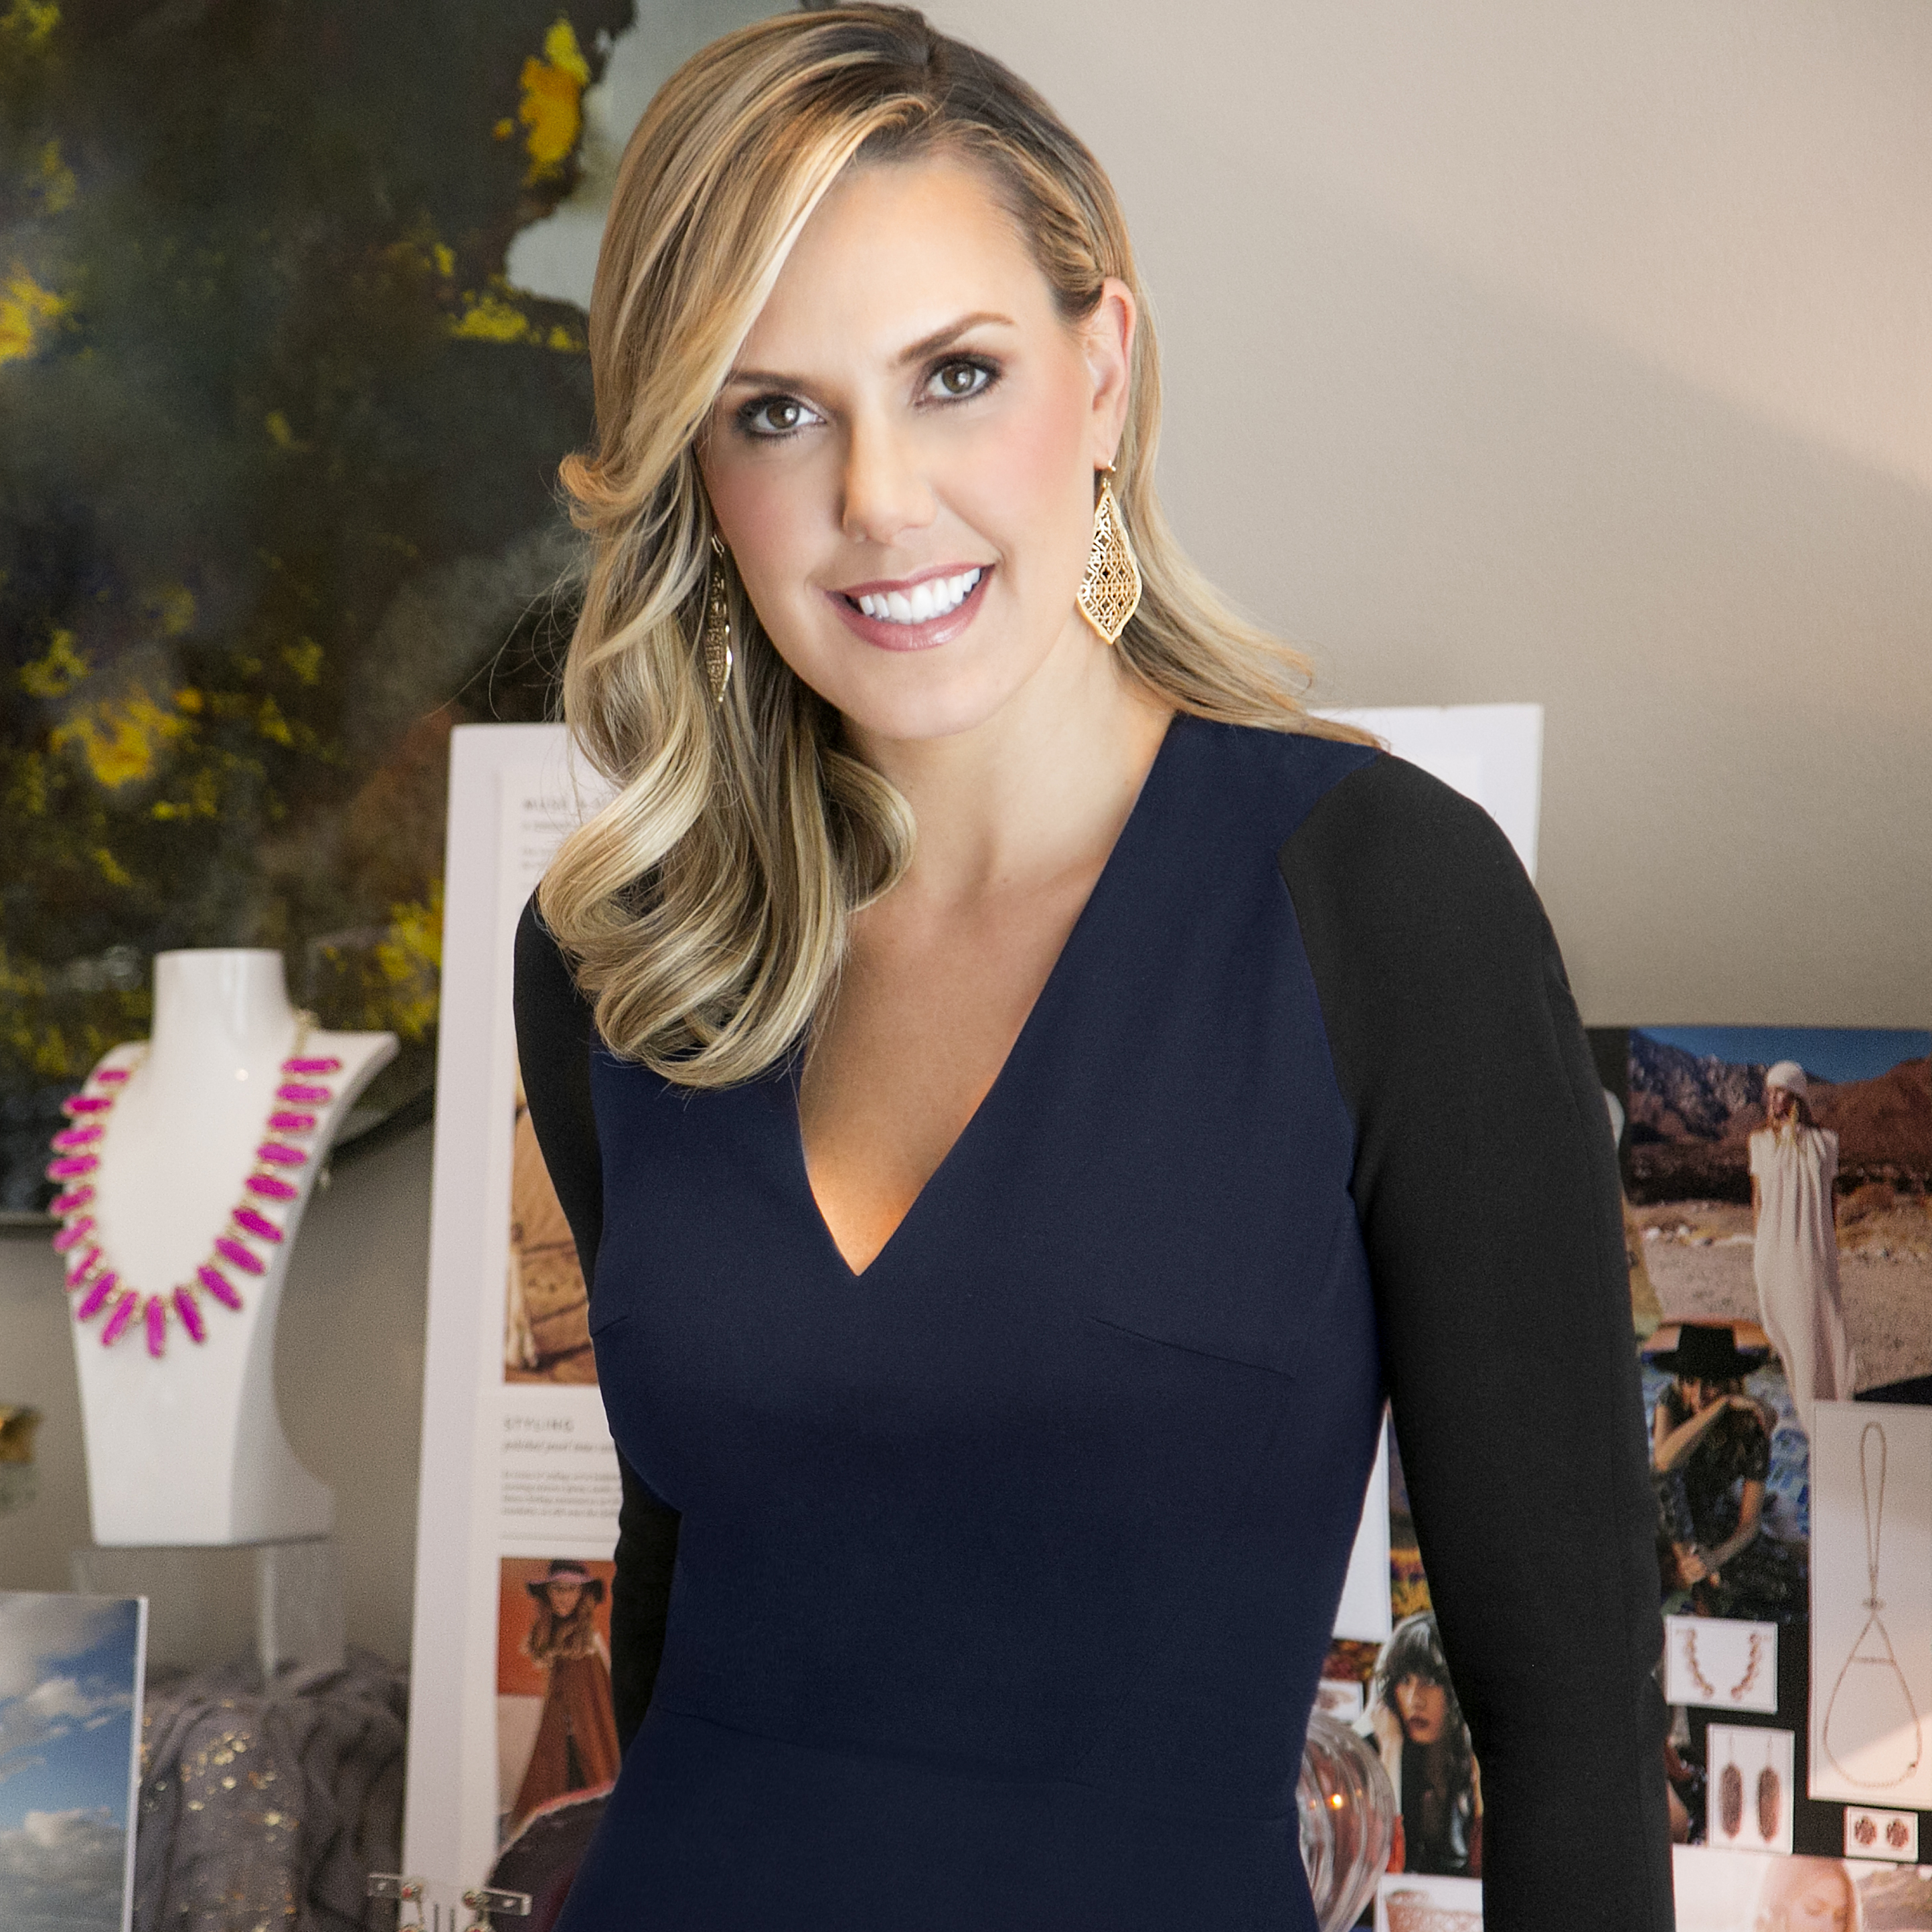 days of artists kendra scott s guardian angel takes flight for the fifth consecutive year kendra scott and her team have created two astonishingly beautiful pieces for art brareg austin the austin based designer